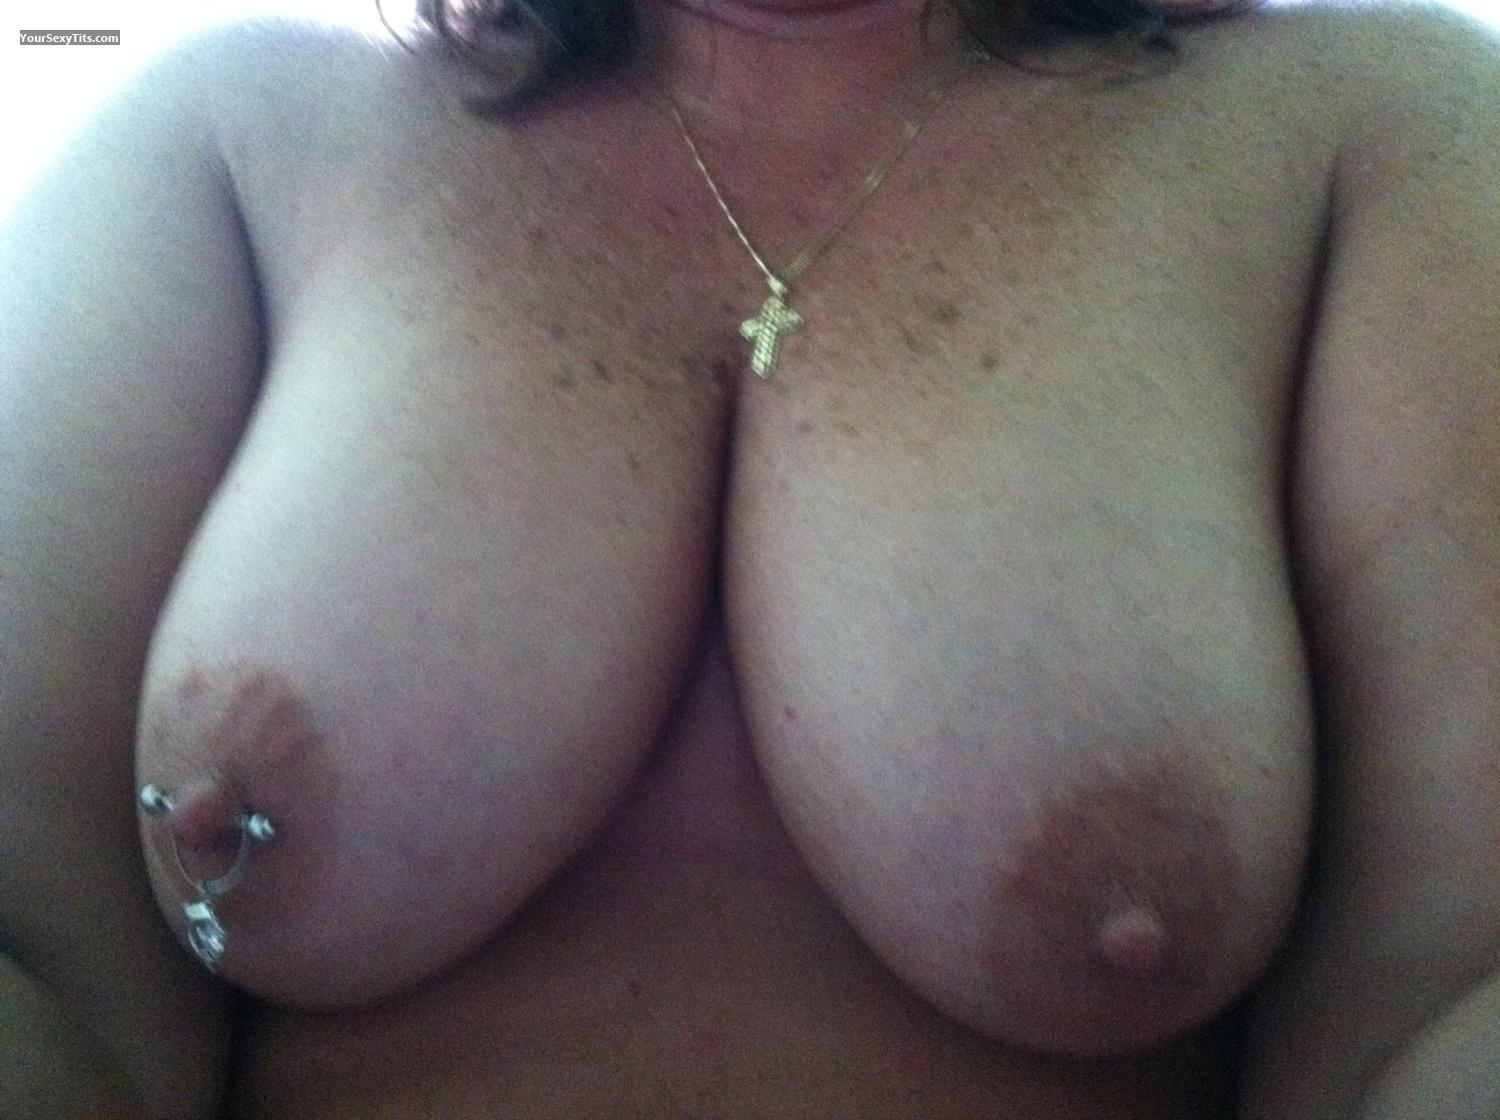 My Medium Tits Selfie by Camping Girl